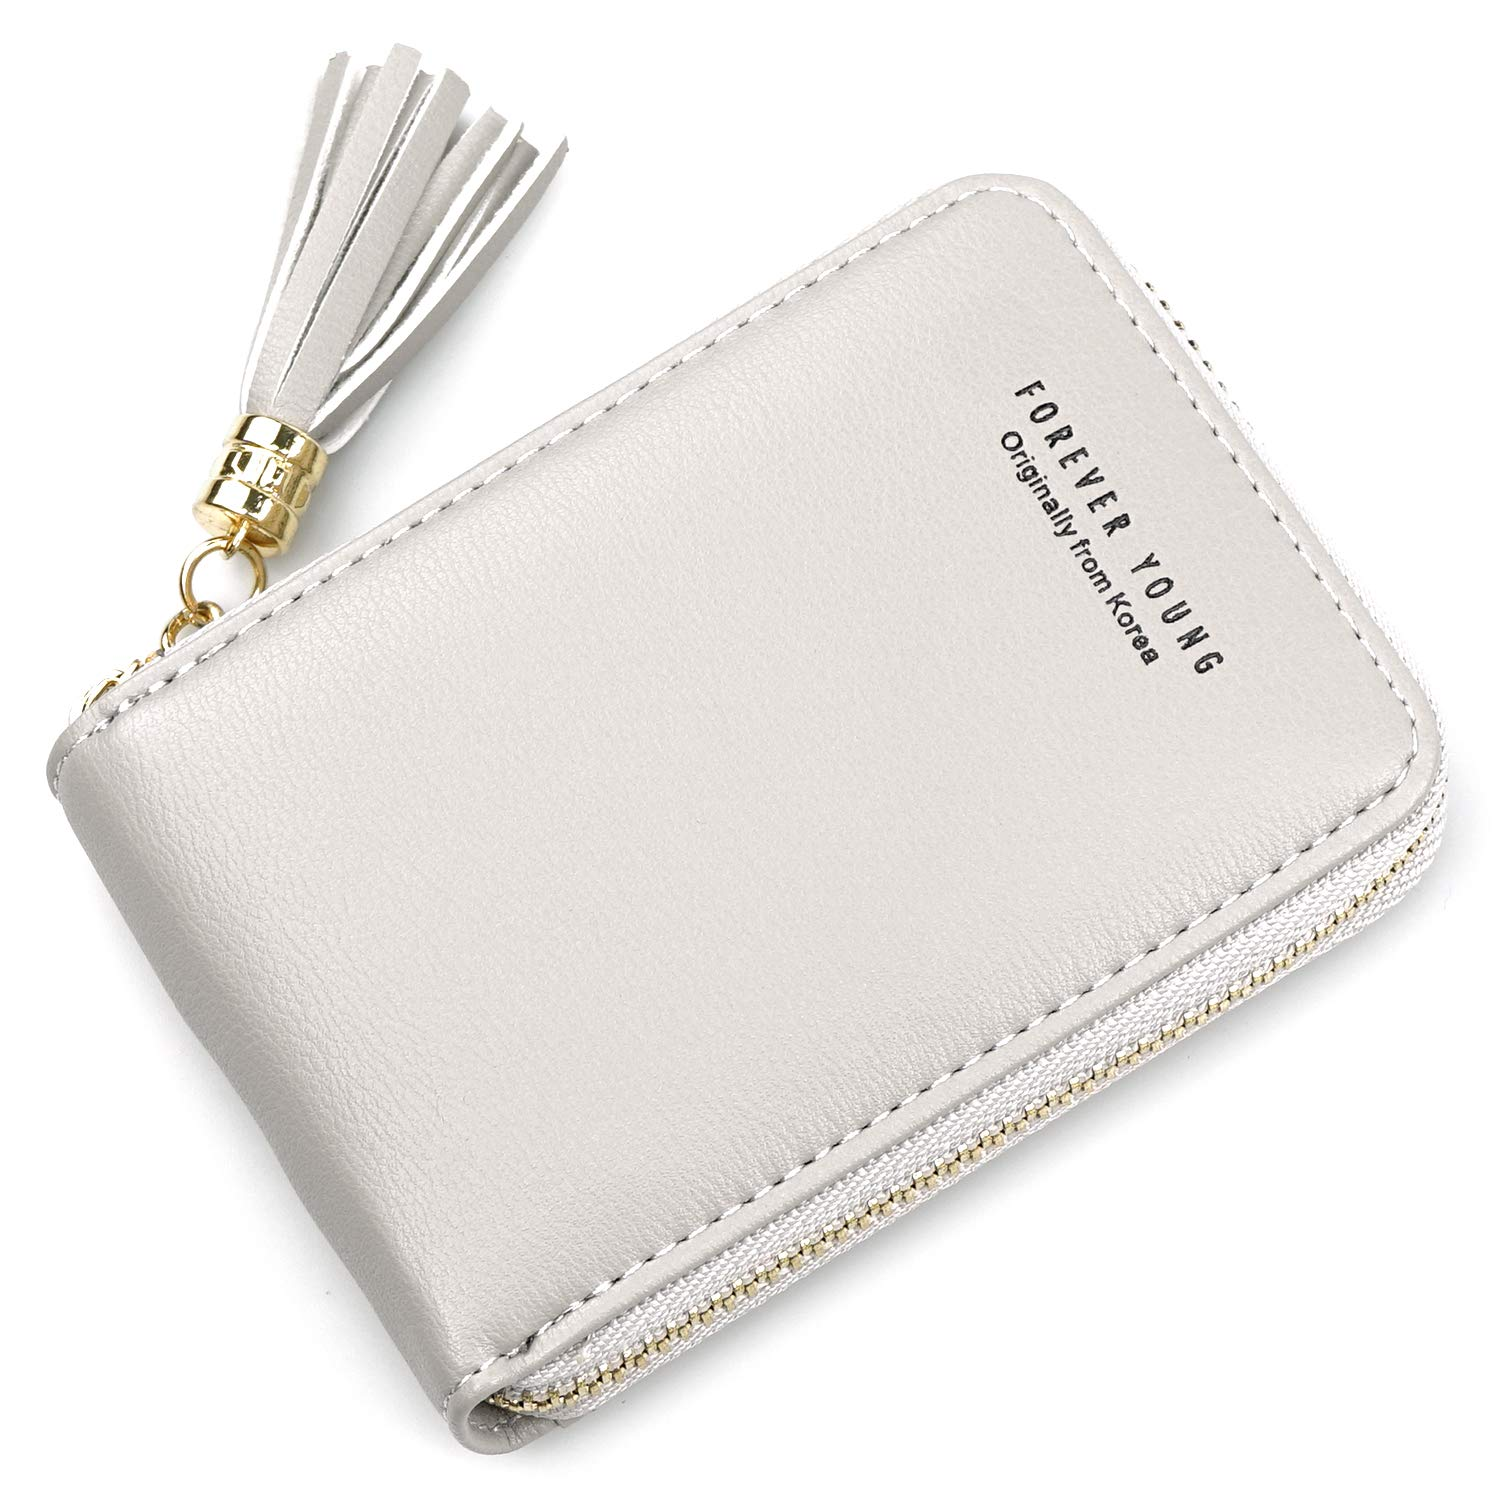 Women's Genuine Leather RFID Secure Spacious Cute Zipper Card Wallet Small Purse Card Case Holder